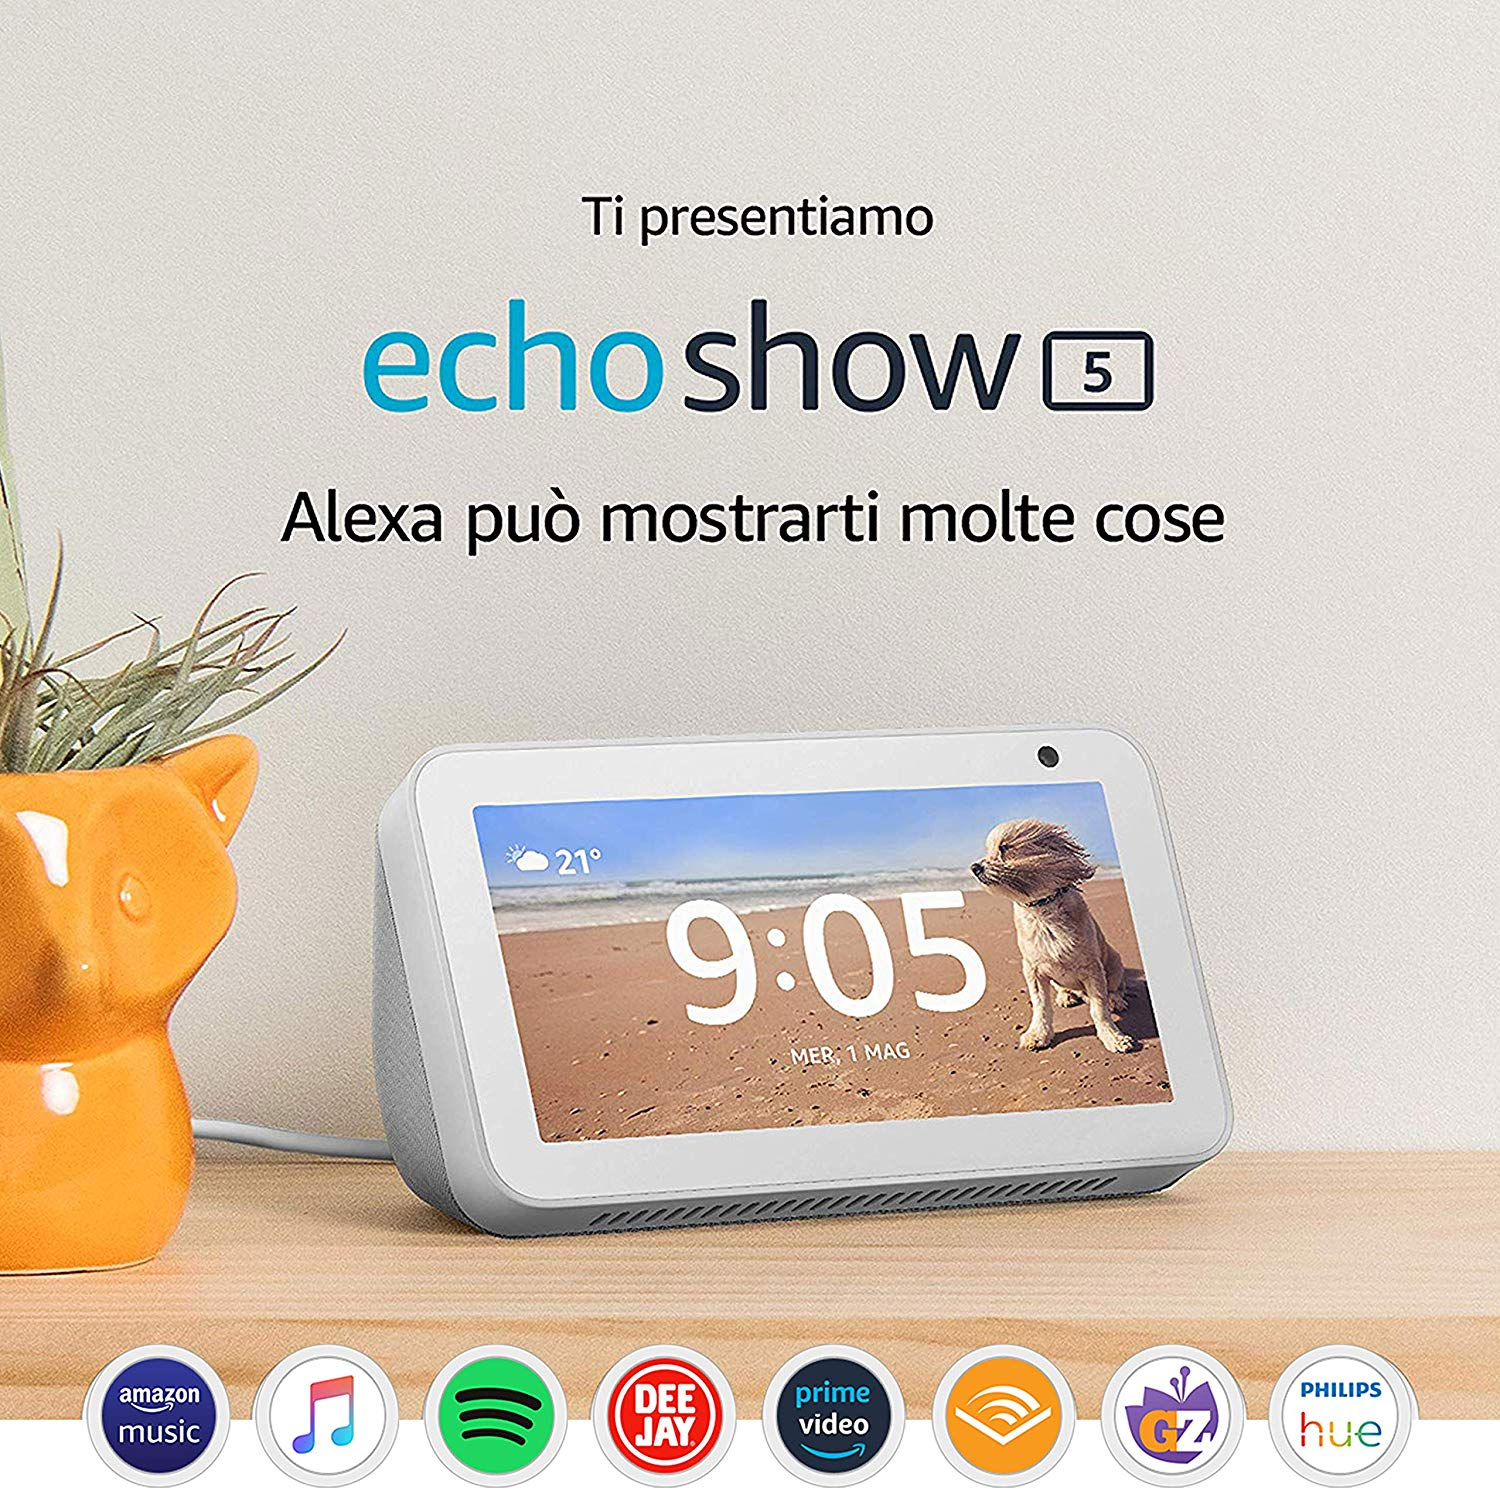 Ti presentiamo Echo Show 5 - Schermo compatto e intelligente con Alexa, Bianco: Amazon.it